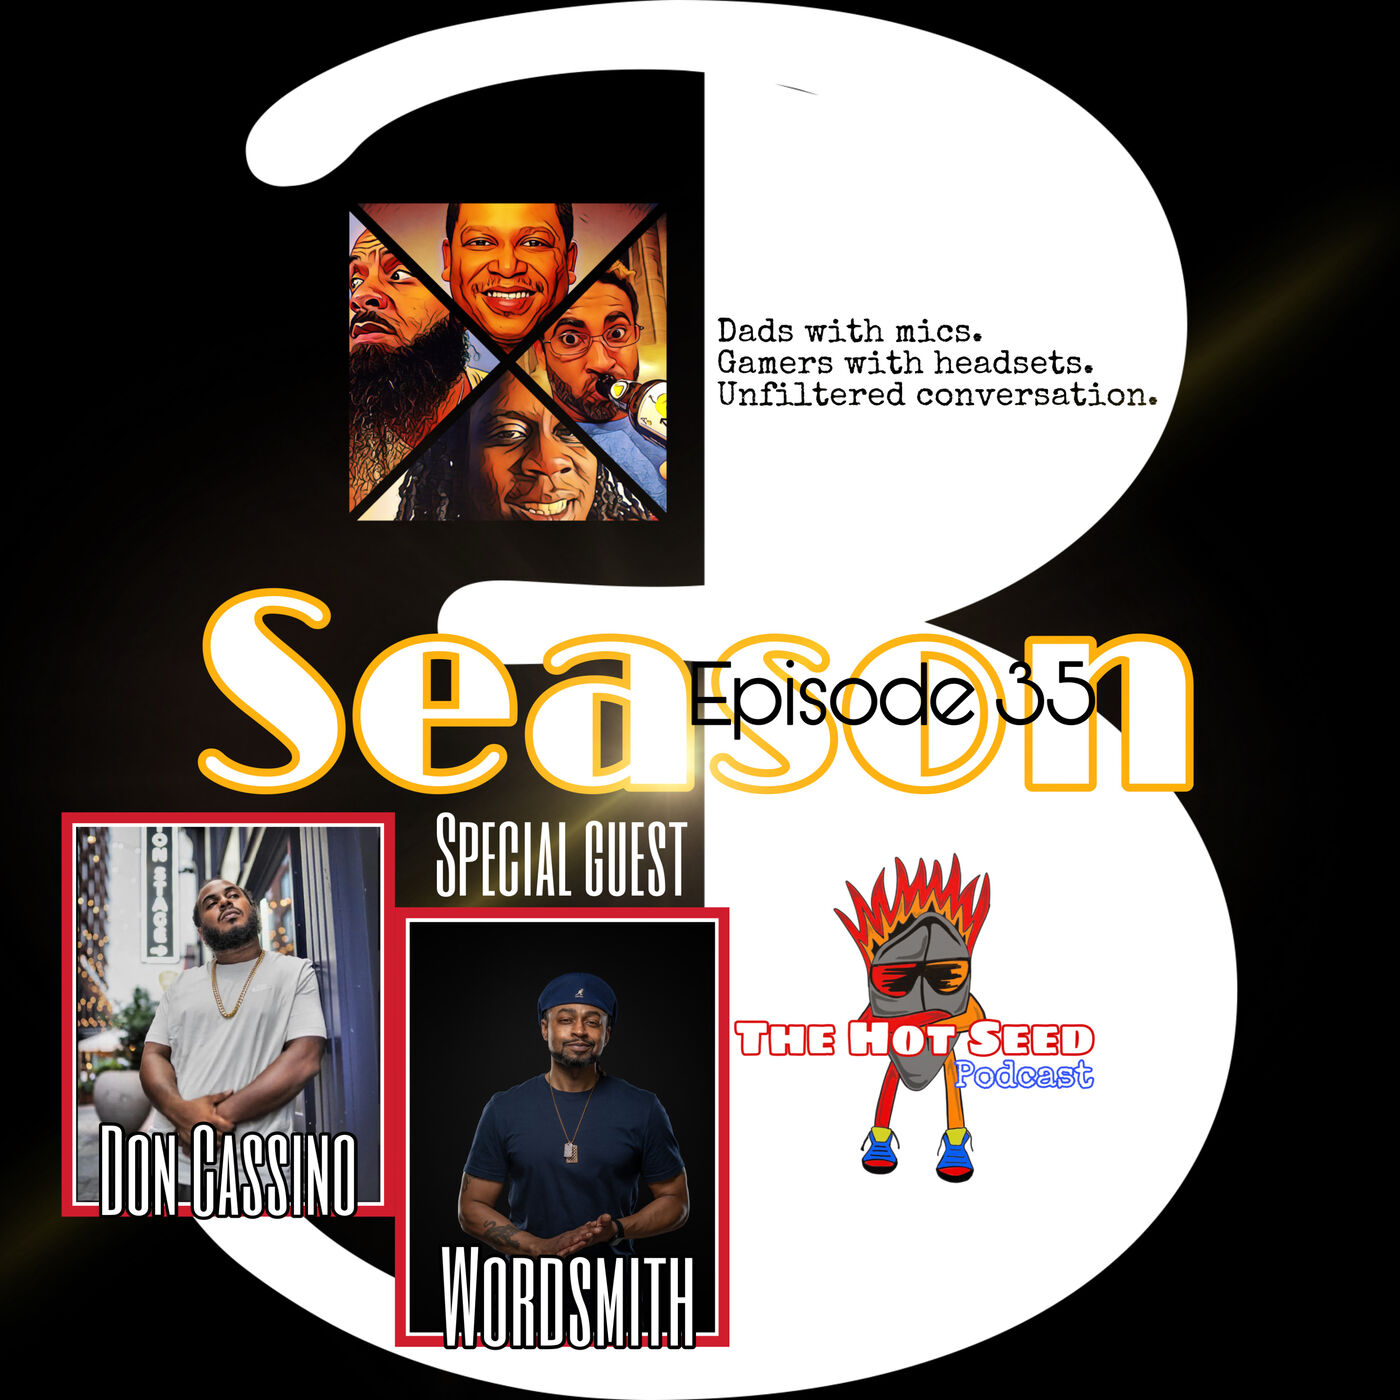 Ep.35 Barz with special guest Don Cassino and Wordsmith